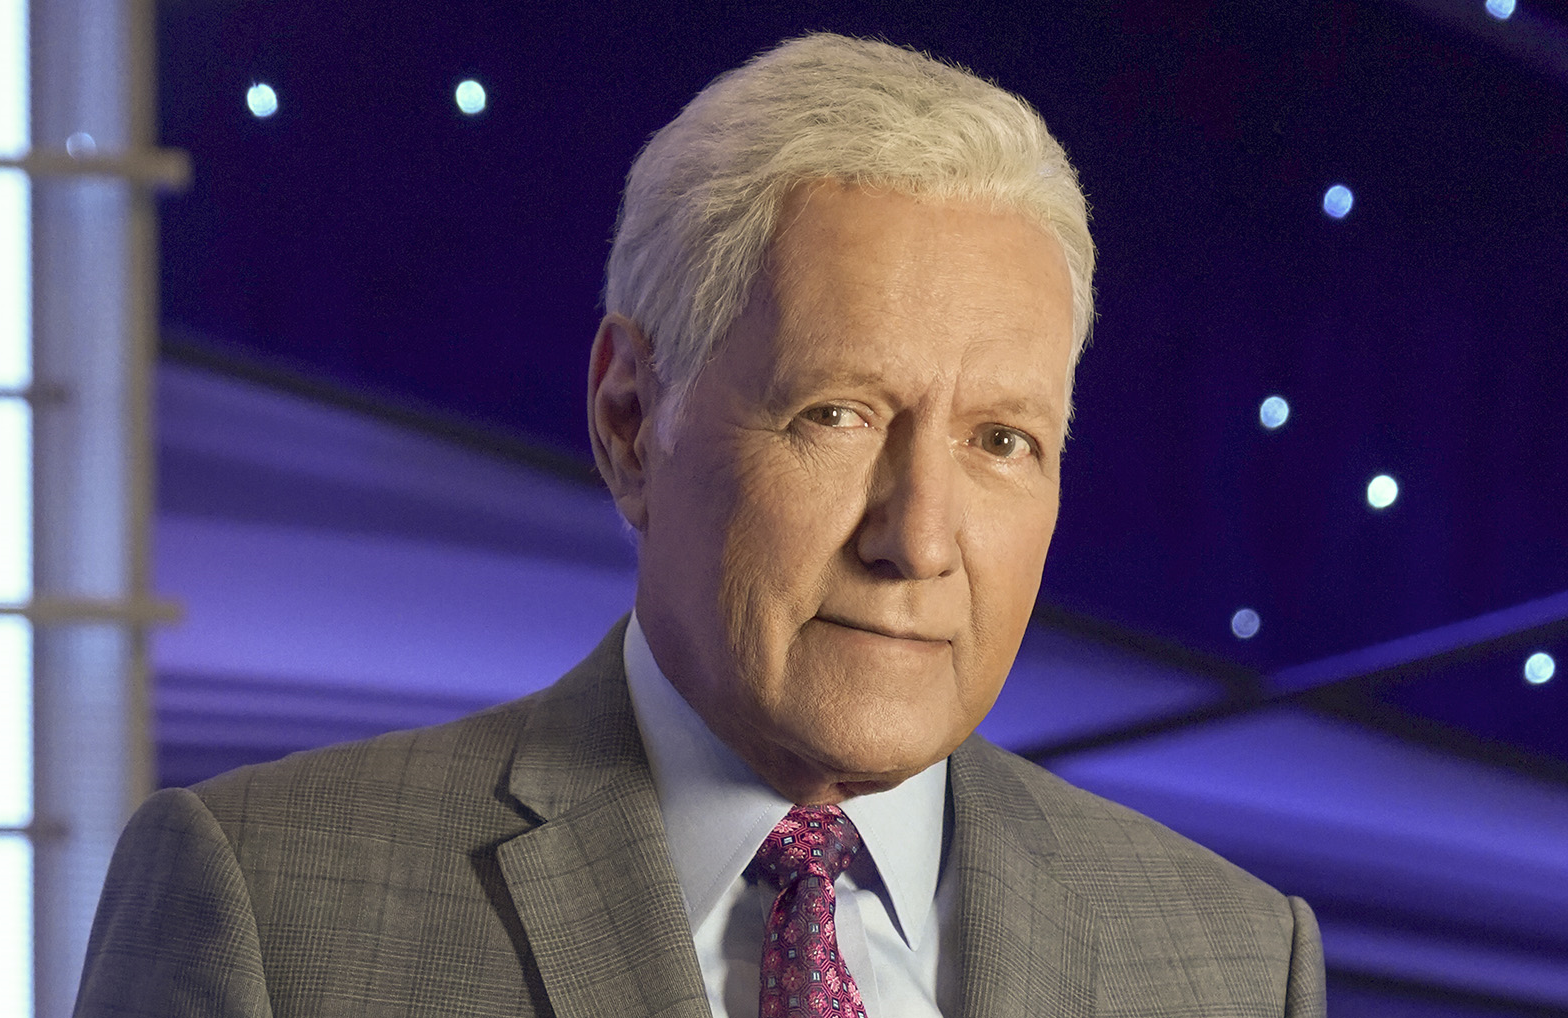 Jeopardy! fans will know this is a recent picture of Alex Trebek — he shaved off his signature mustache in 2018 at the request of his wife. (ABC/Eric McCandless)